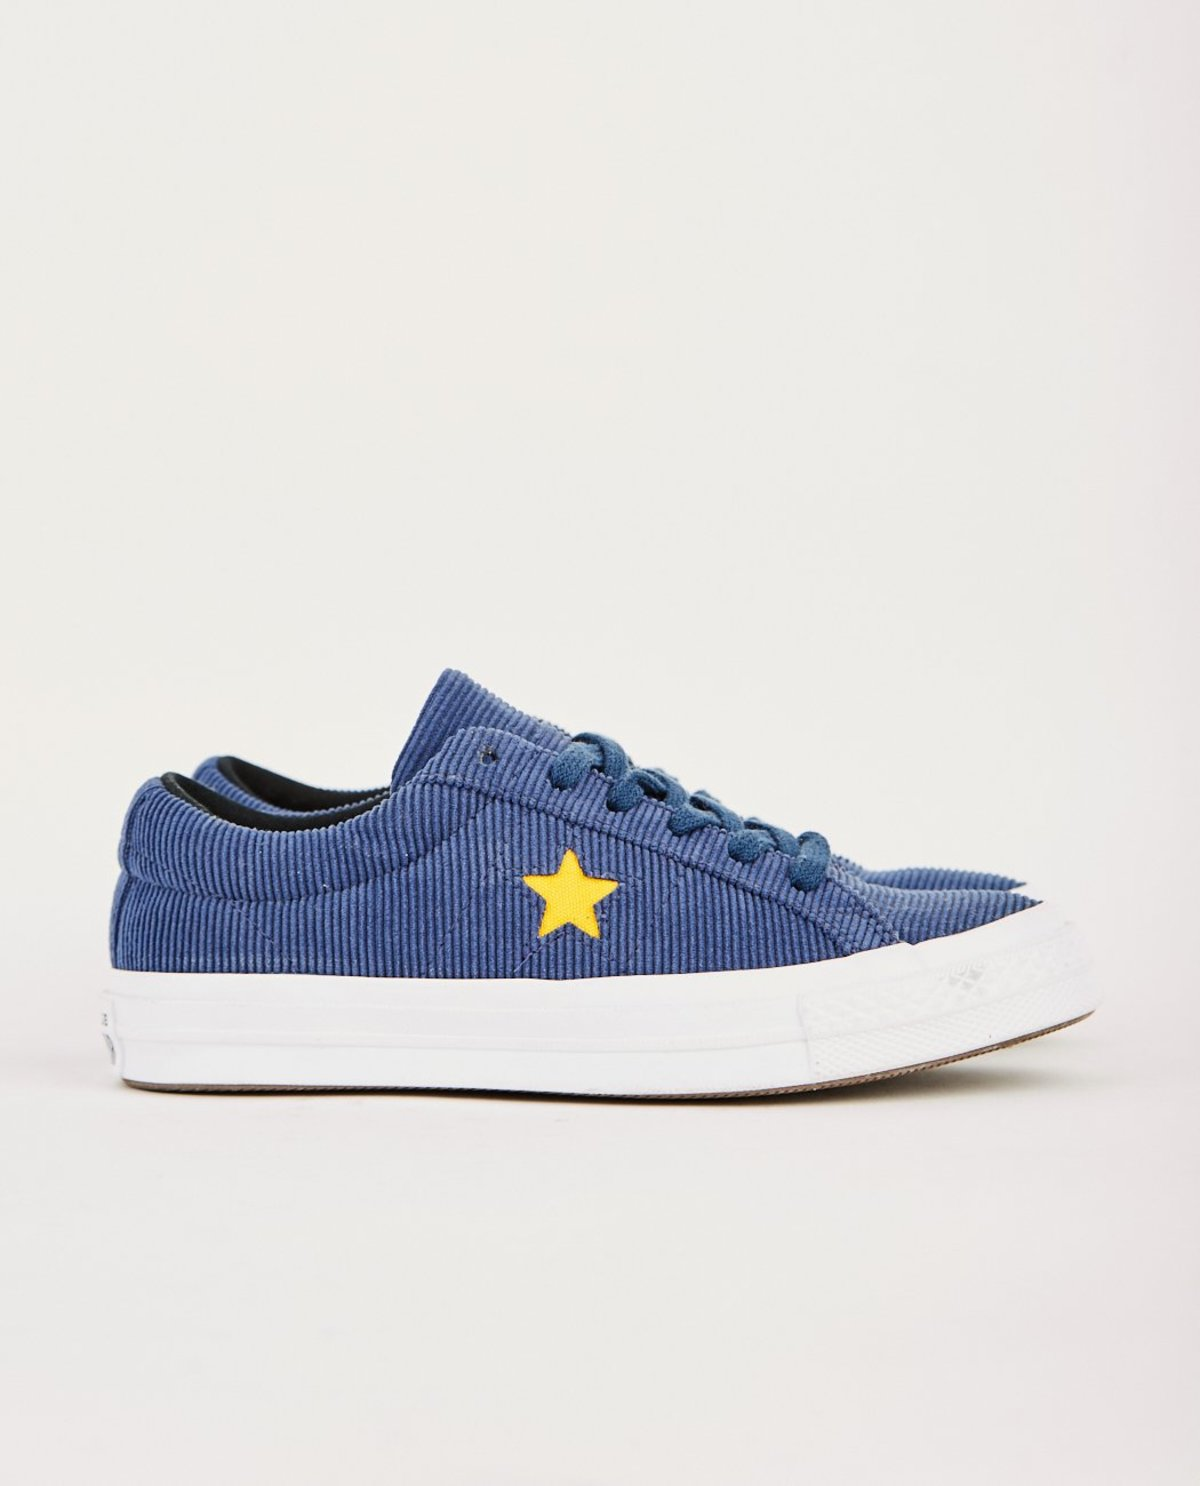 760a4038d80f UNISEX Converse ONE STAR OX CORDUROY - NAVY GOLD